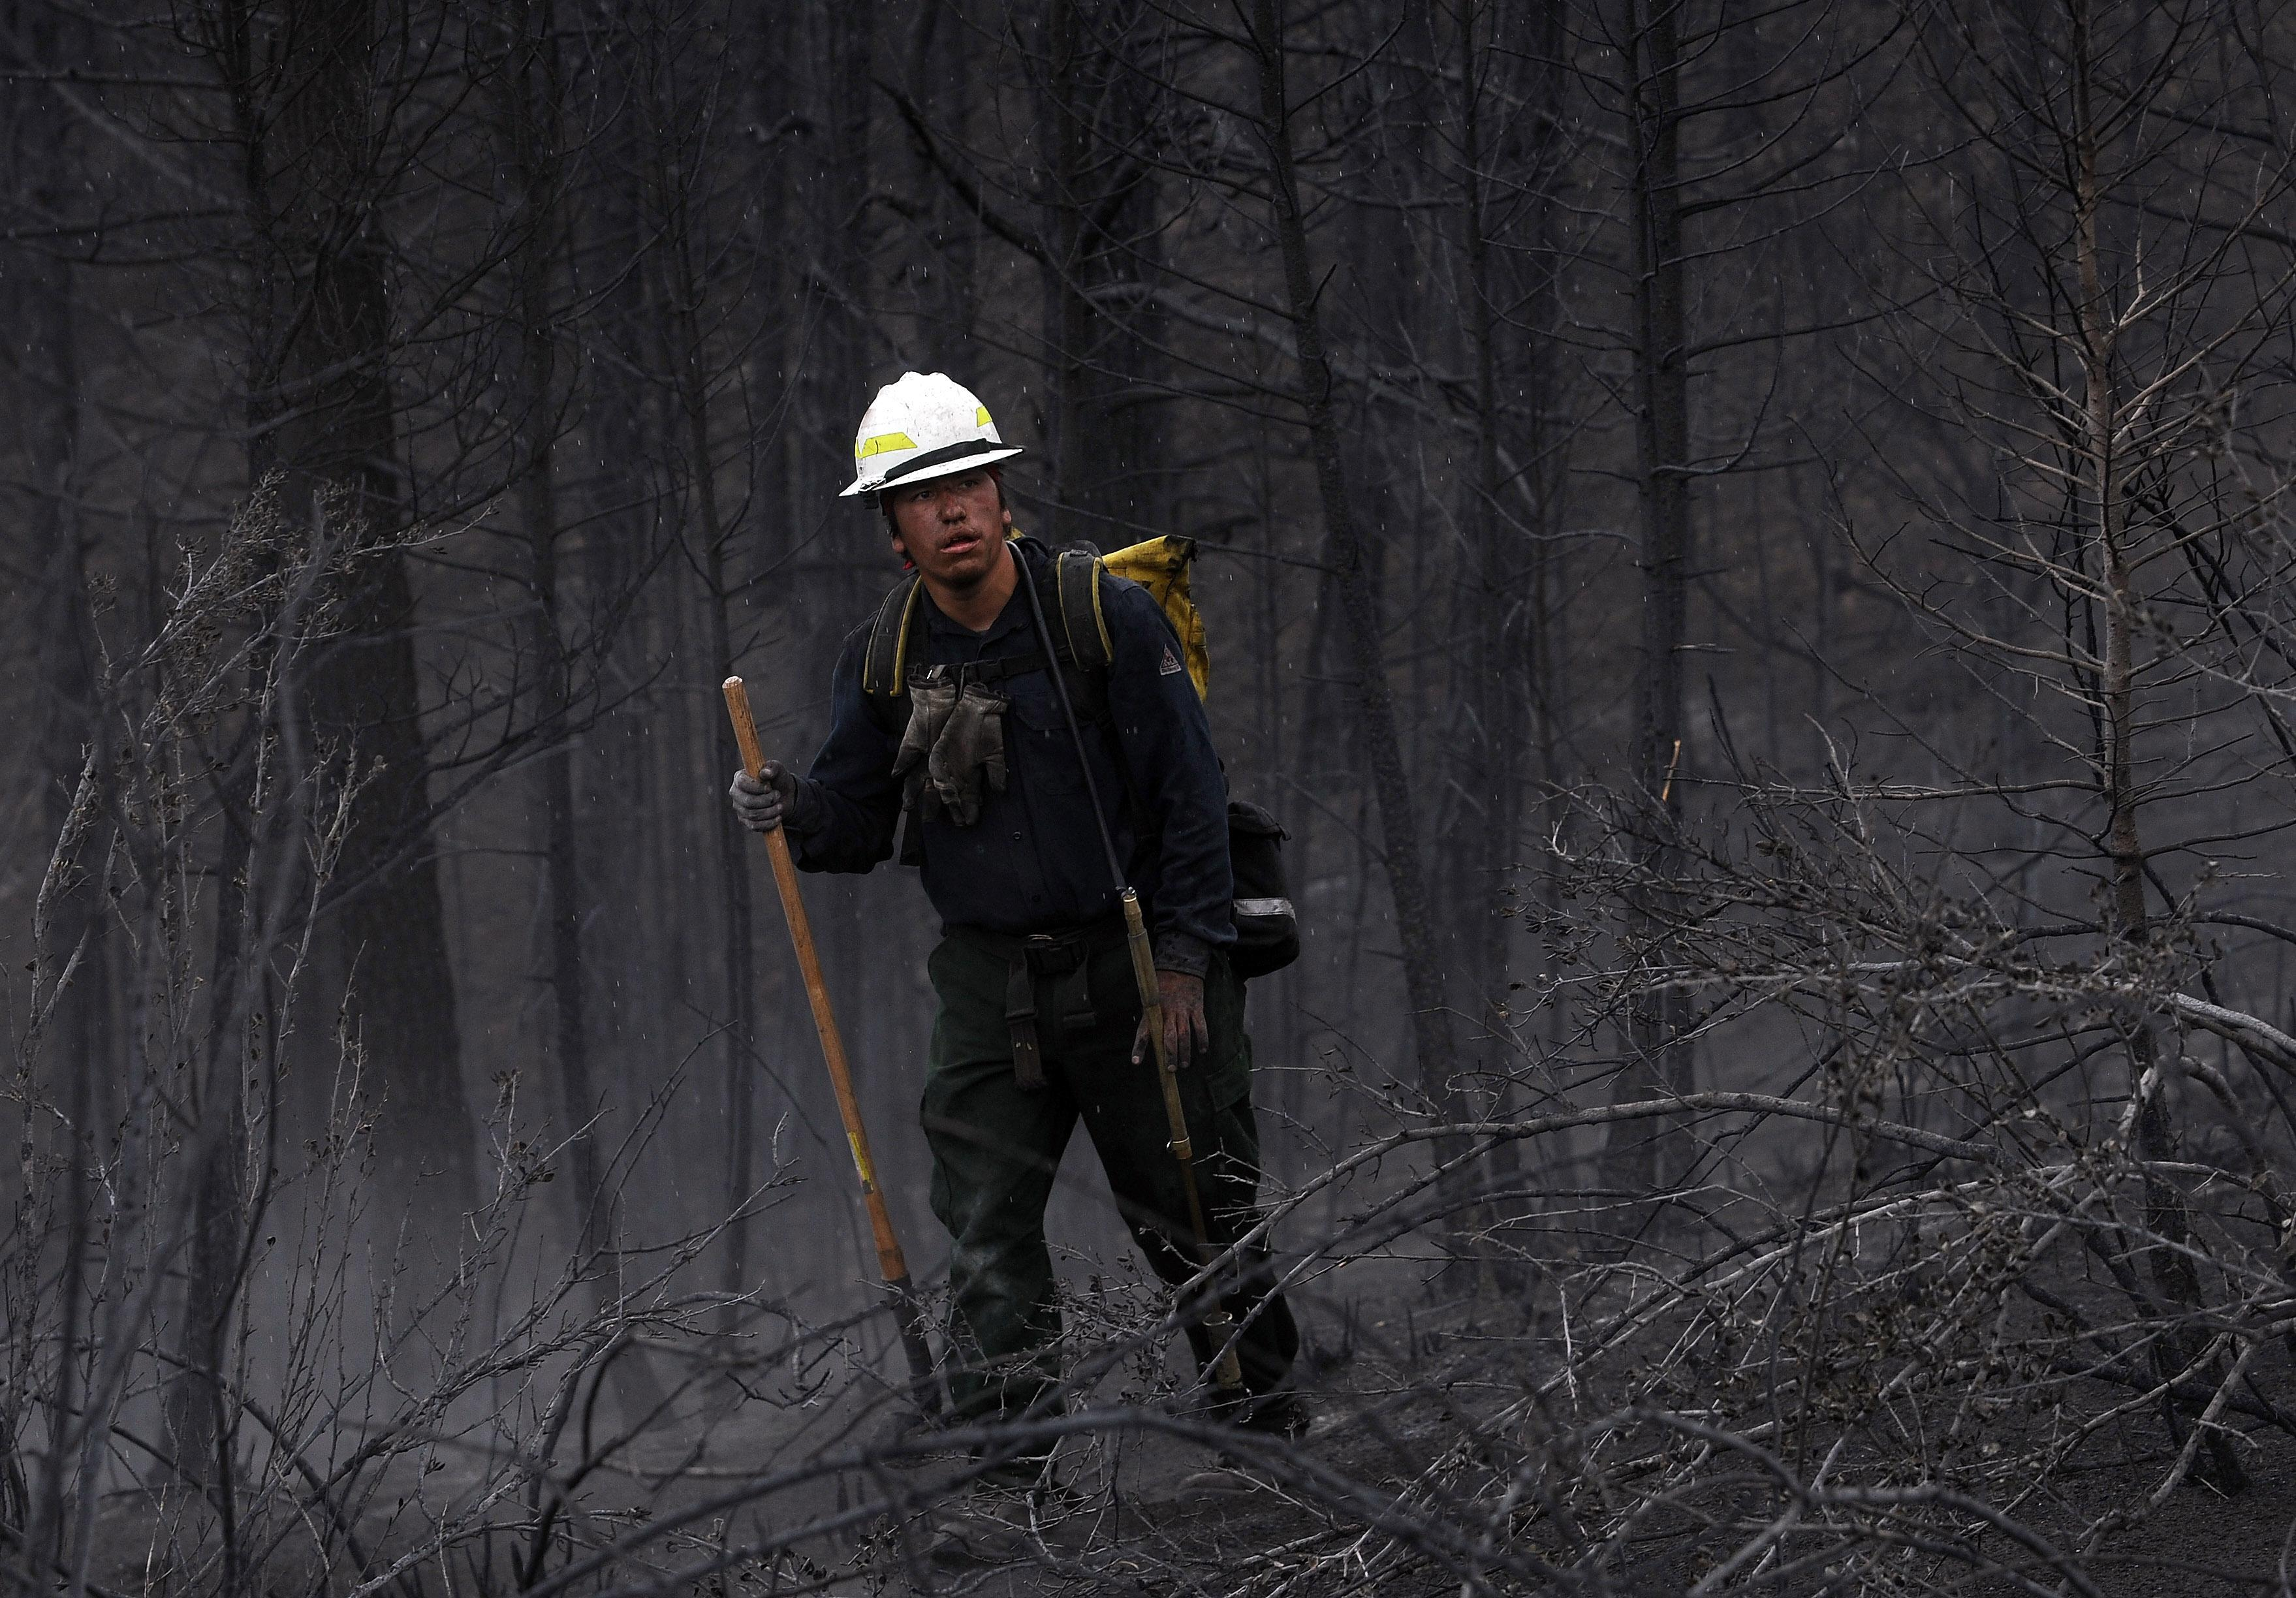 "A firefighter from the Bighorn 209, a hand crew from the Crow Agency in Montana, check for hot spots on the Waldo Canyon Fire west of Colorado Springs, Colo., Friday, June 29, 2012. After declaring a ""major disaster"" in the state early Friday and promising federal aid, President Barack Obama got a firsthand view of the wildfires and their toll on residential communities. More than 30,000 people have been evacuated in what is now the most destructive wildfire in state history. (AP Photo/The Gazette, Christian Murdock)"